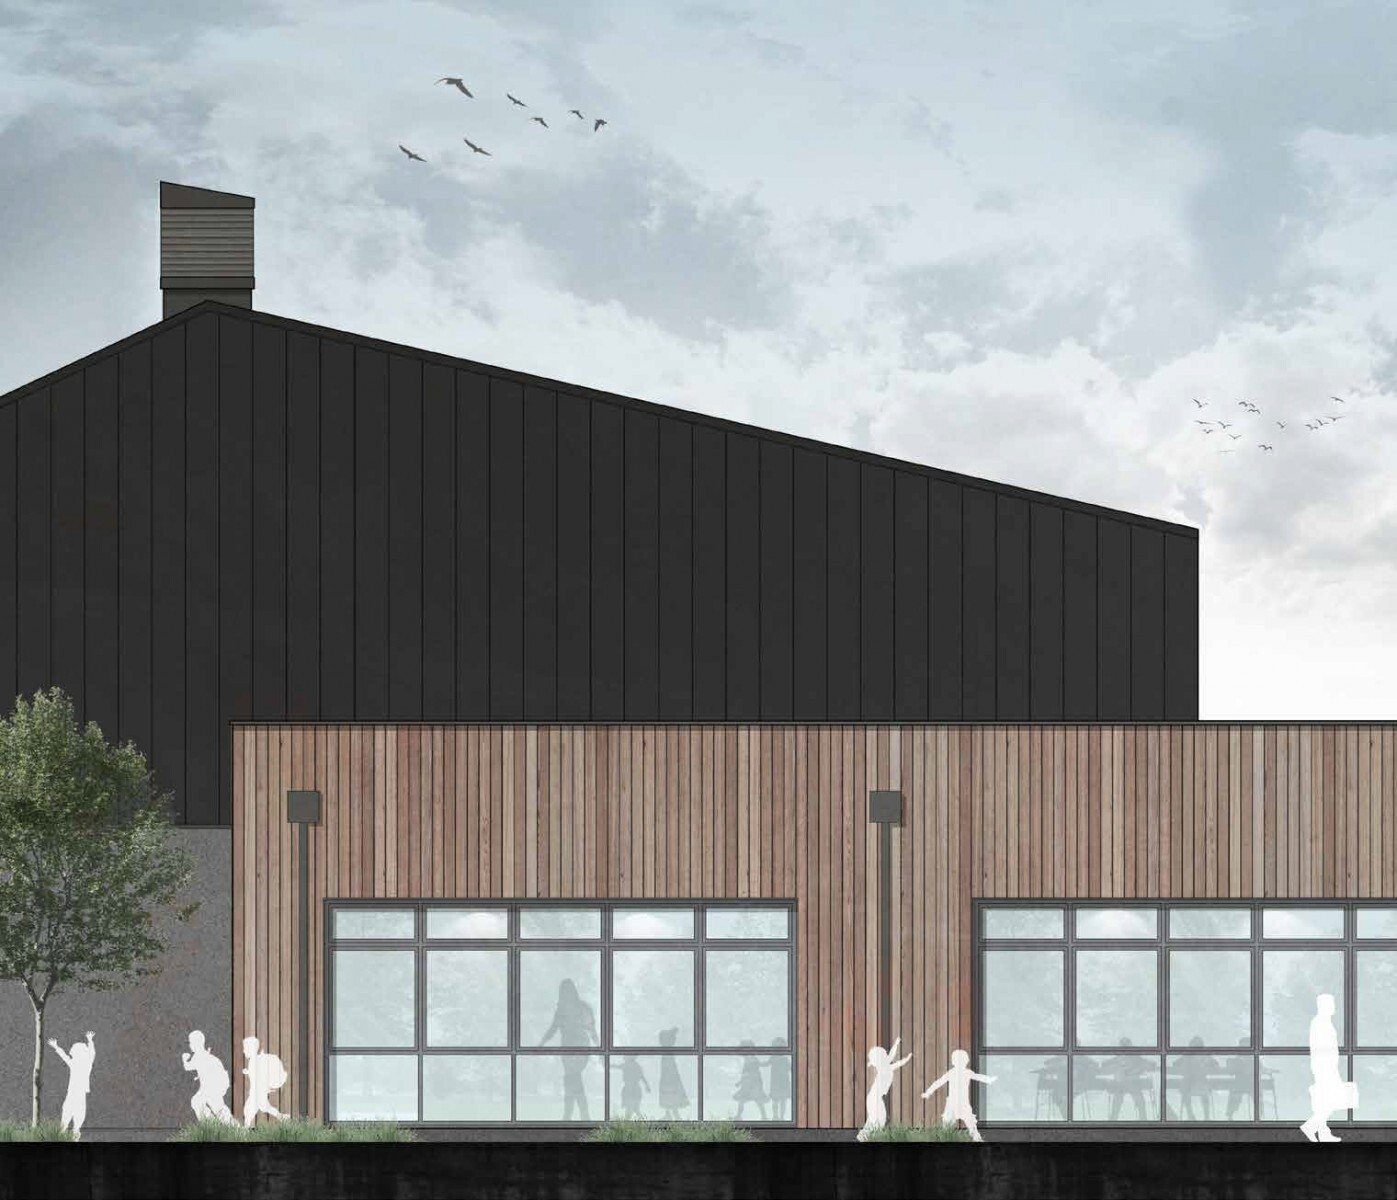 Work underway on Gullane primary school expansion image